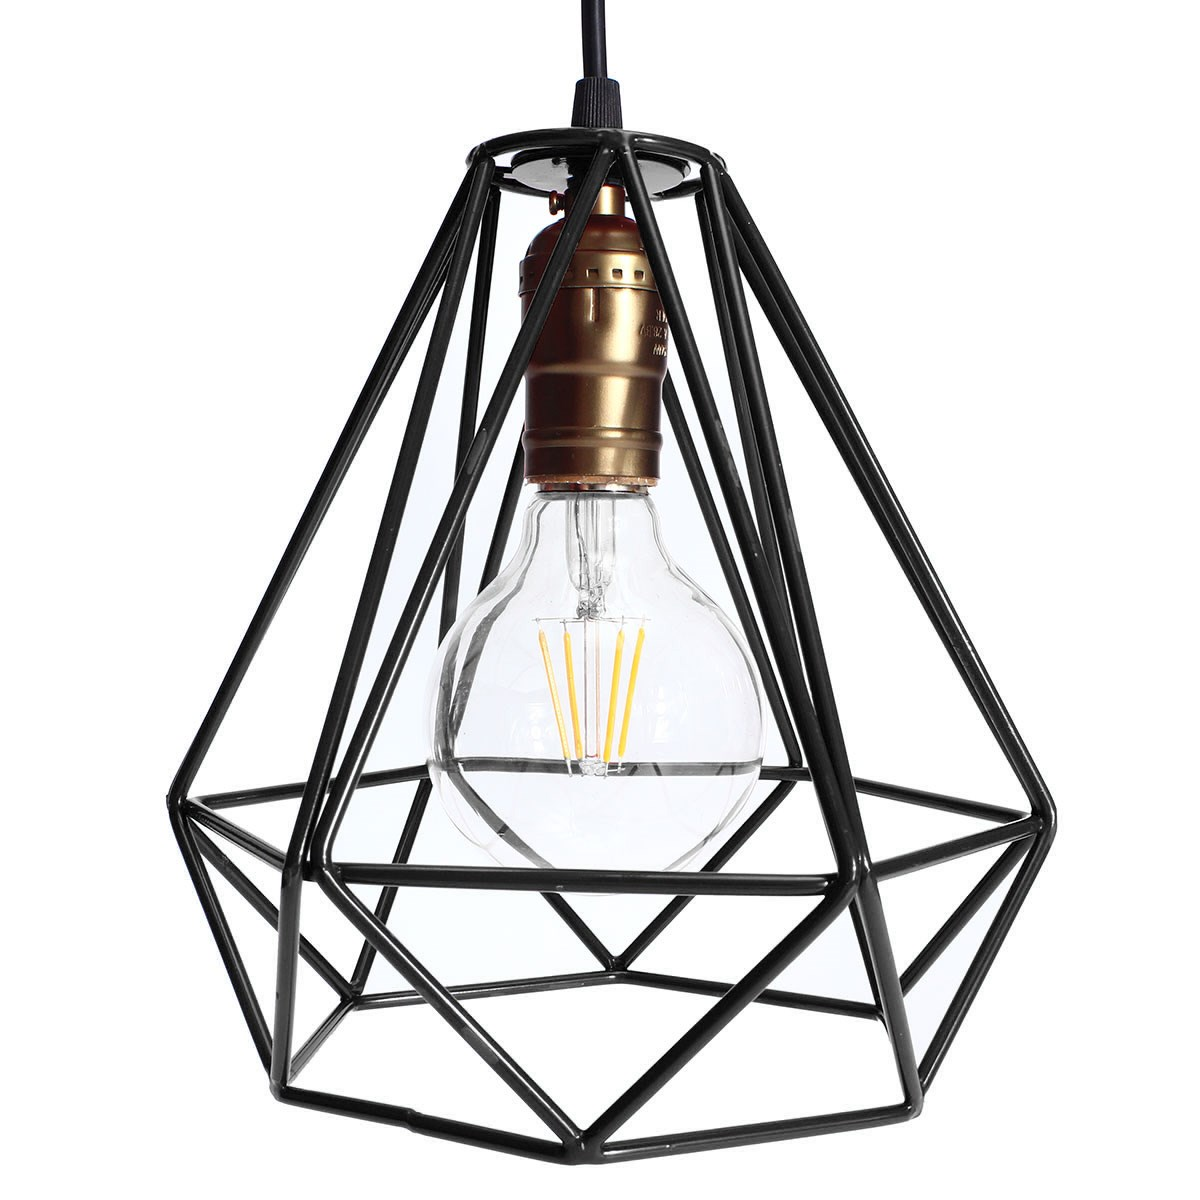 hight resolution of lampshade modern lamp cover loft industrial edison metal wire frame ceiling pendant hanging light lamp cage fixture in lamp covers shades from lights